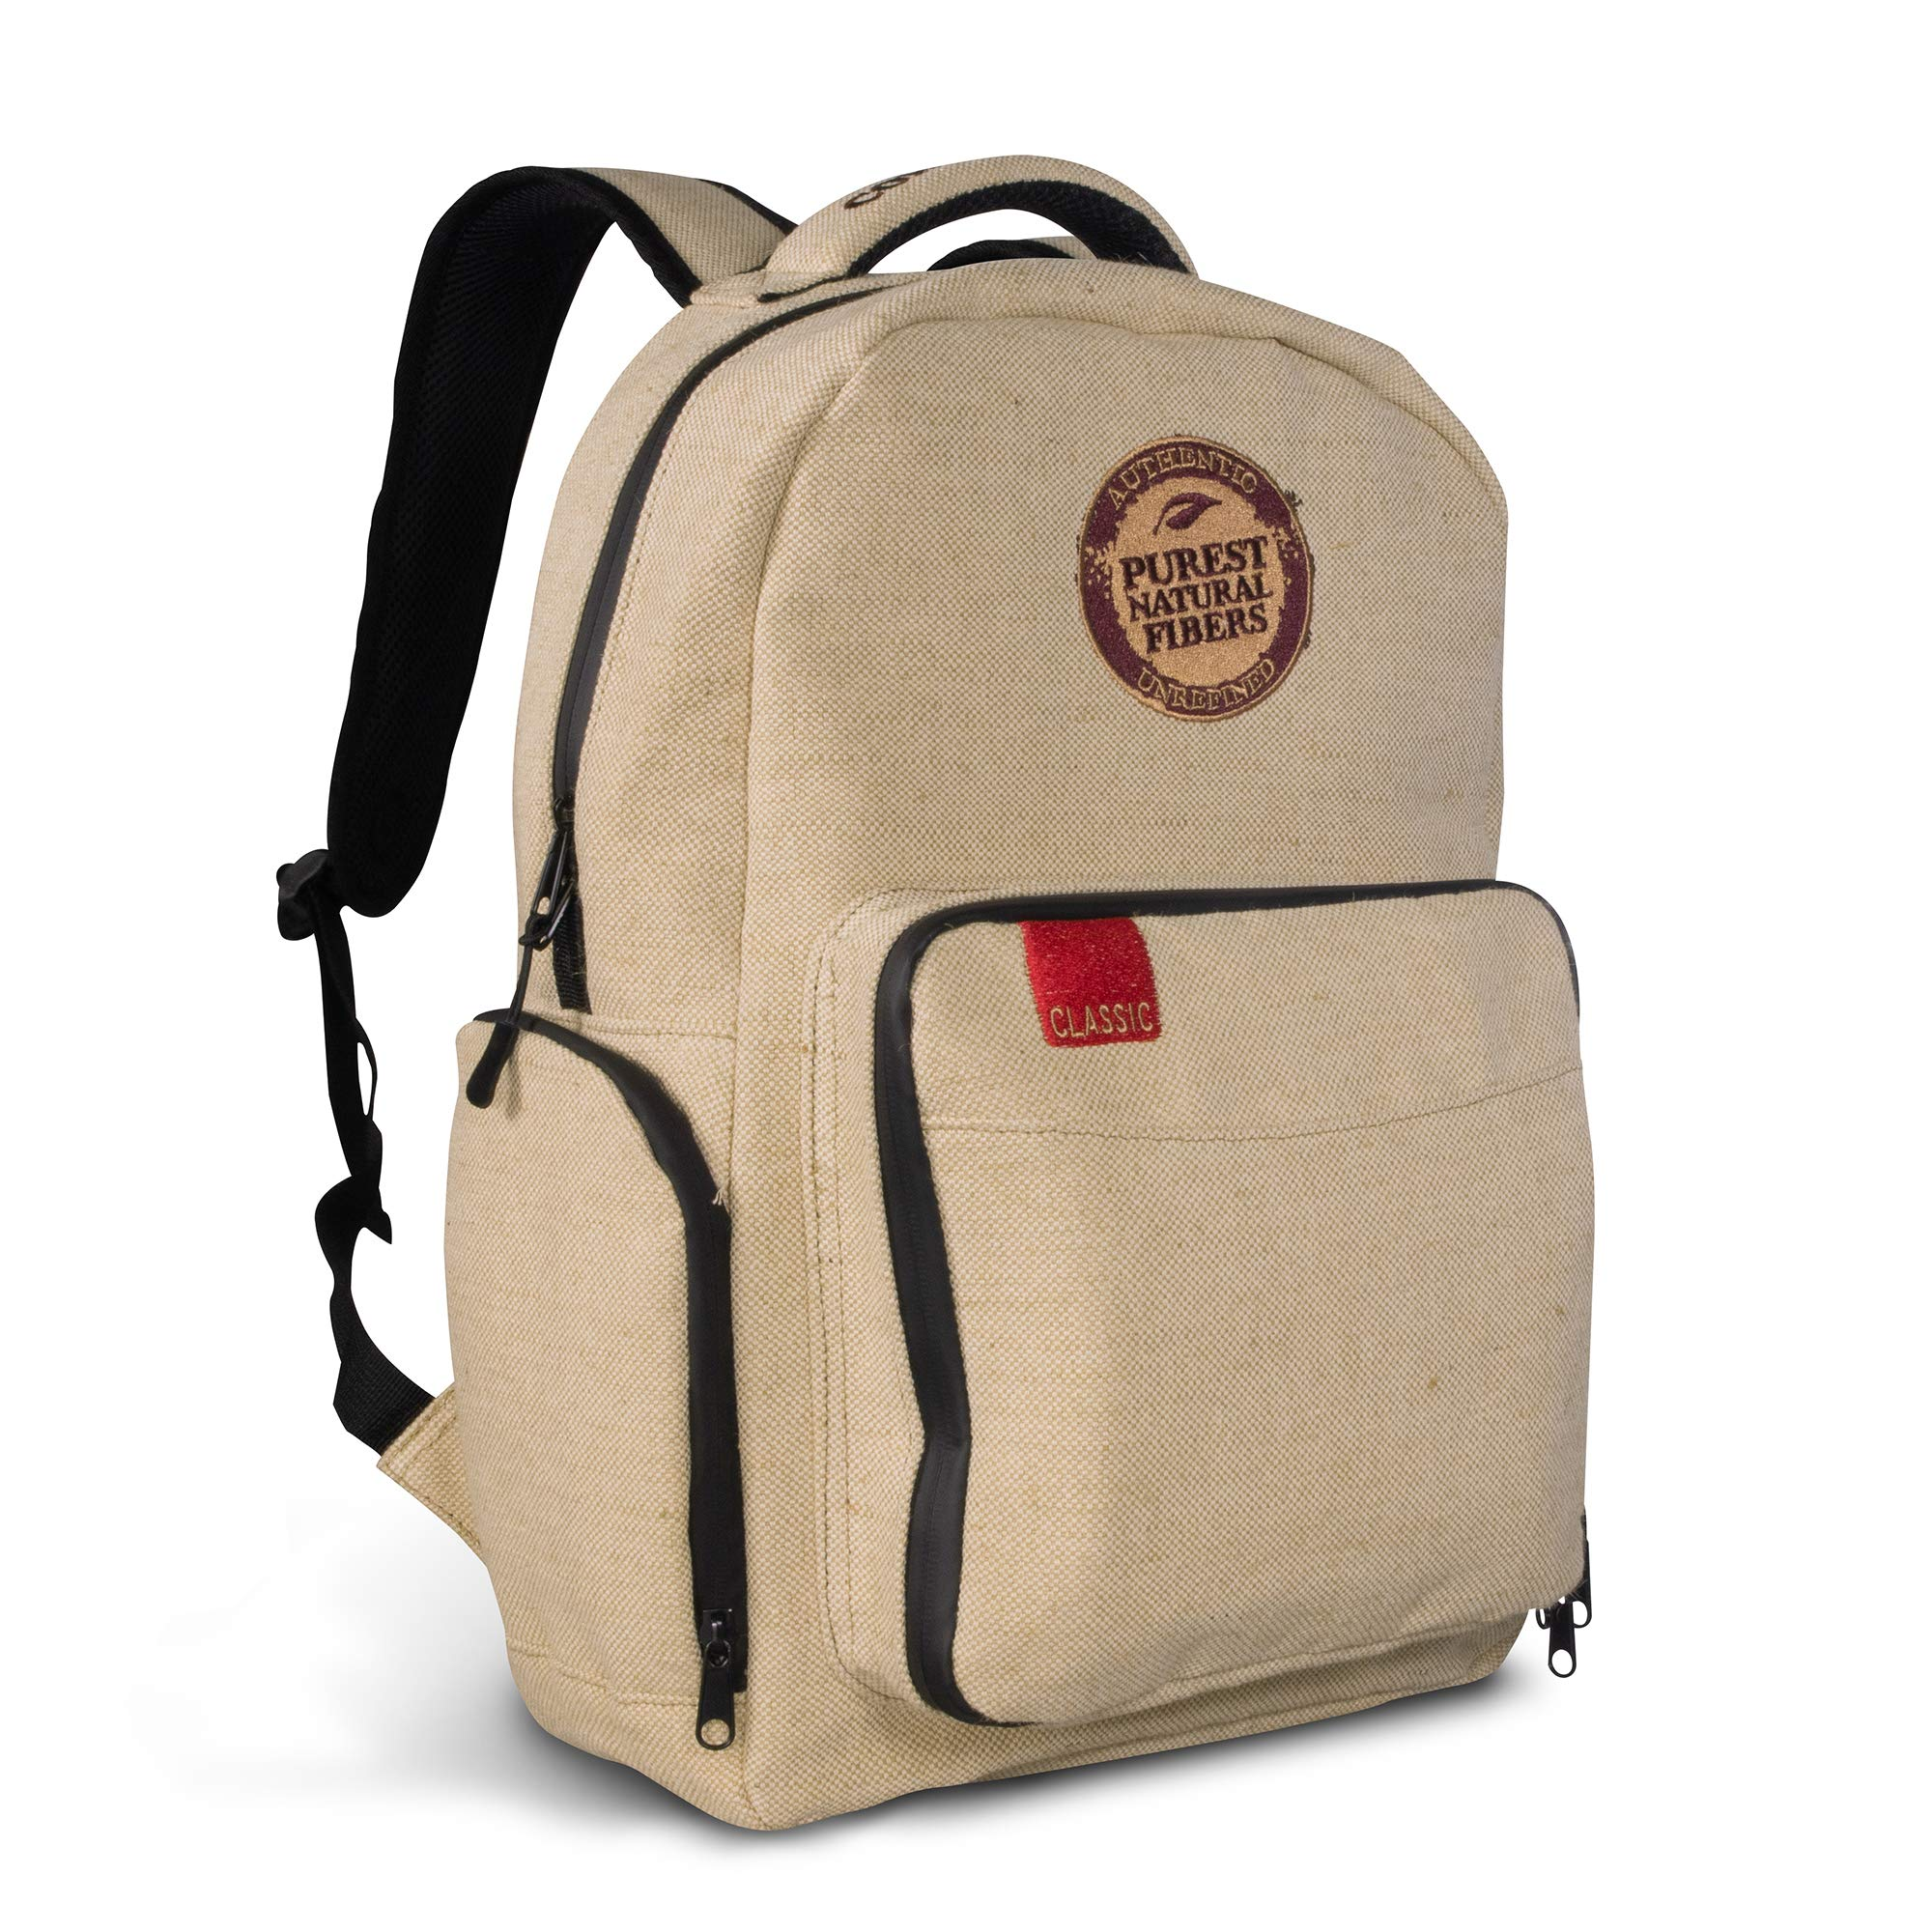 Rolling Papers x RAW Burlap Backpack - Smell Proof 6 Layer Design with Lockable Silicone Gasketed Double Zippers